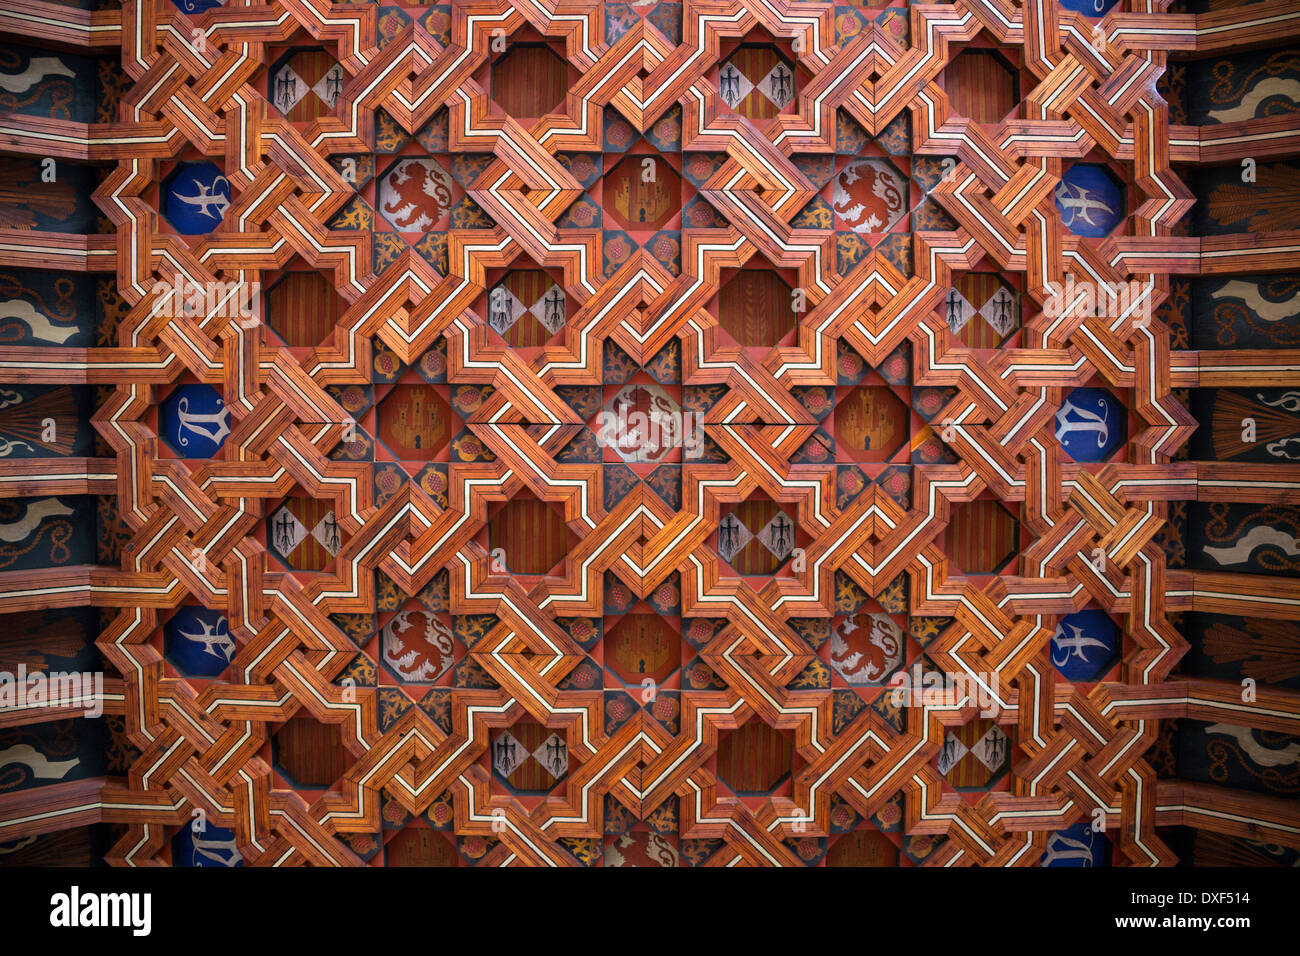 Ornate wooden ceiling design in the cloisters of Toledo Cathedral in the city of Toledo in the La Mancha region of central Spain - Stock Image